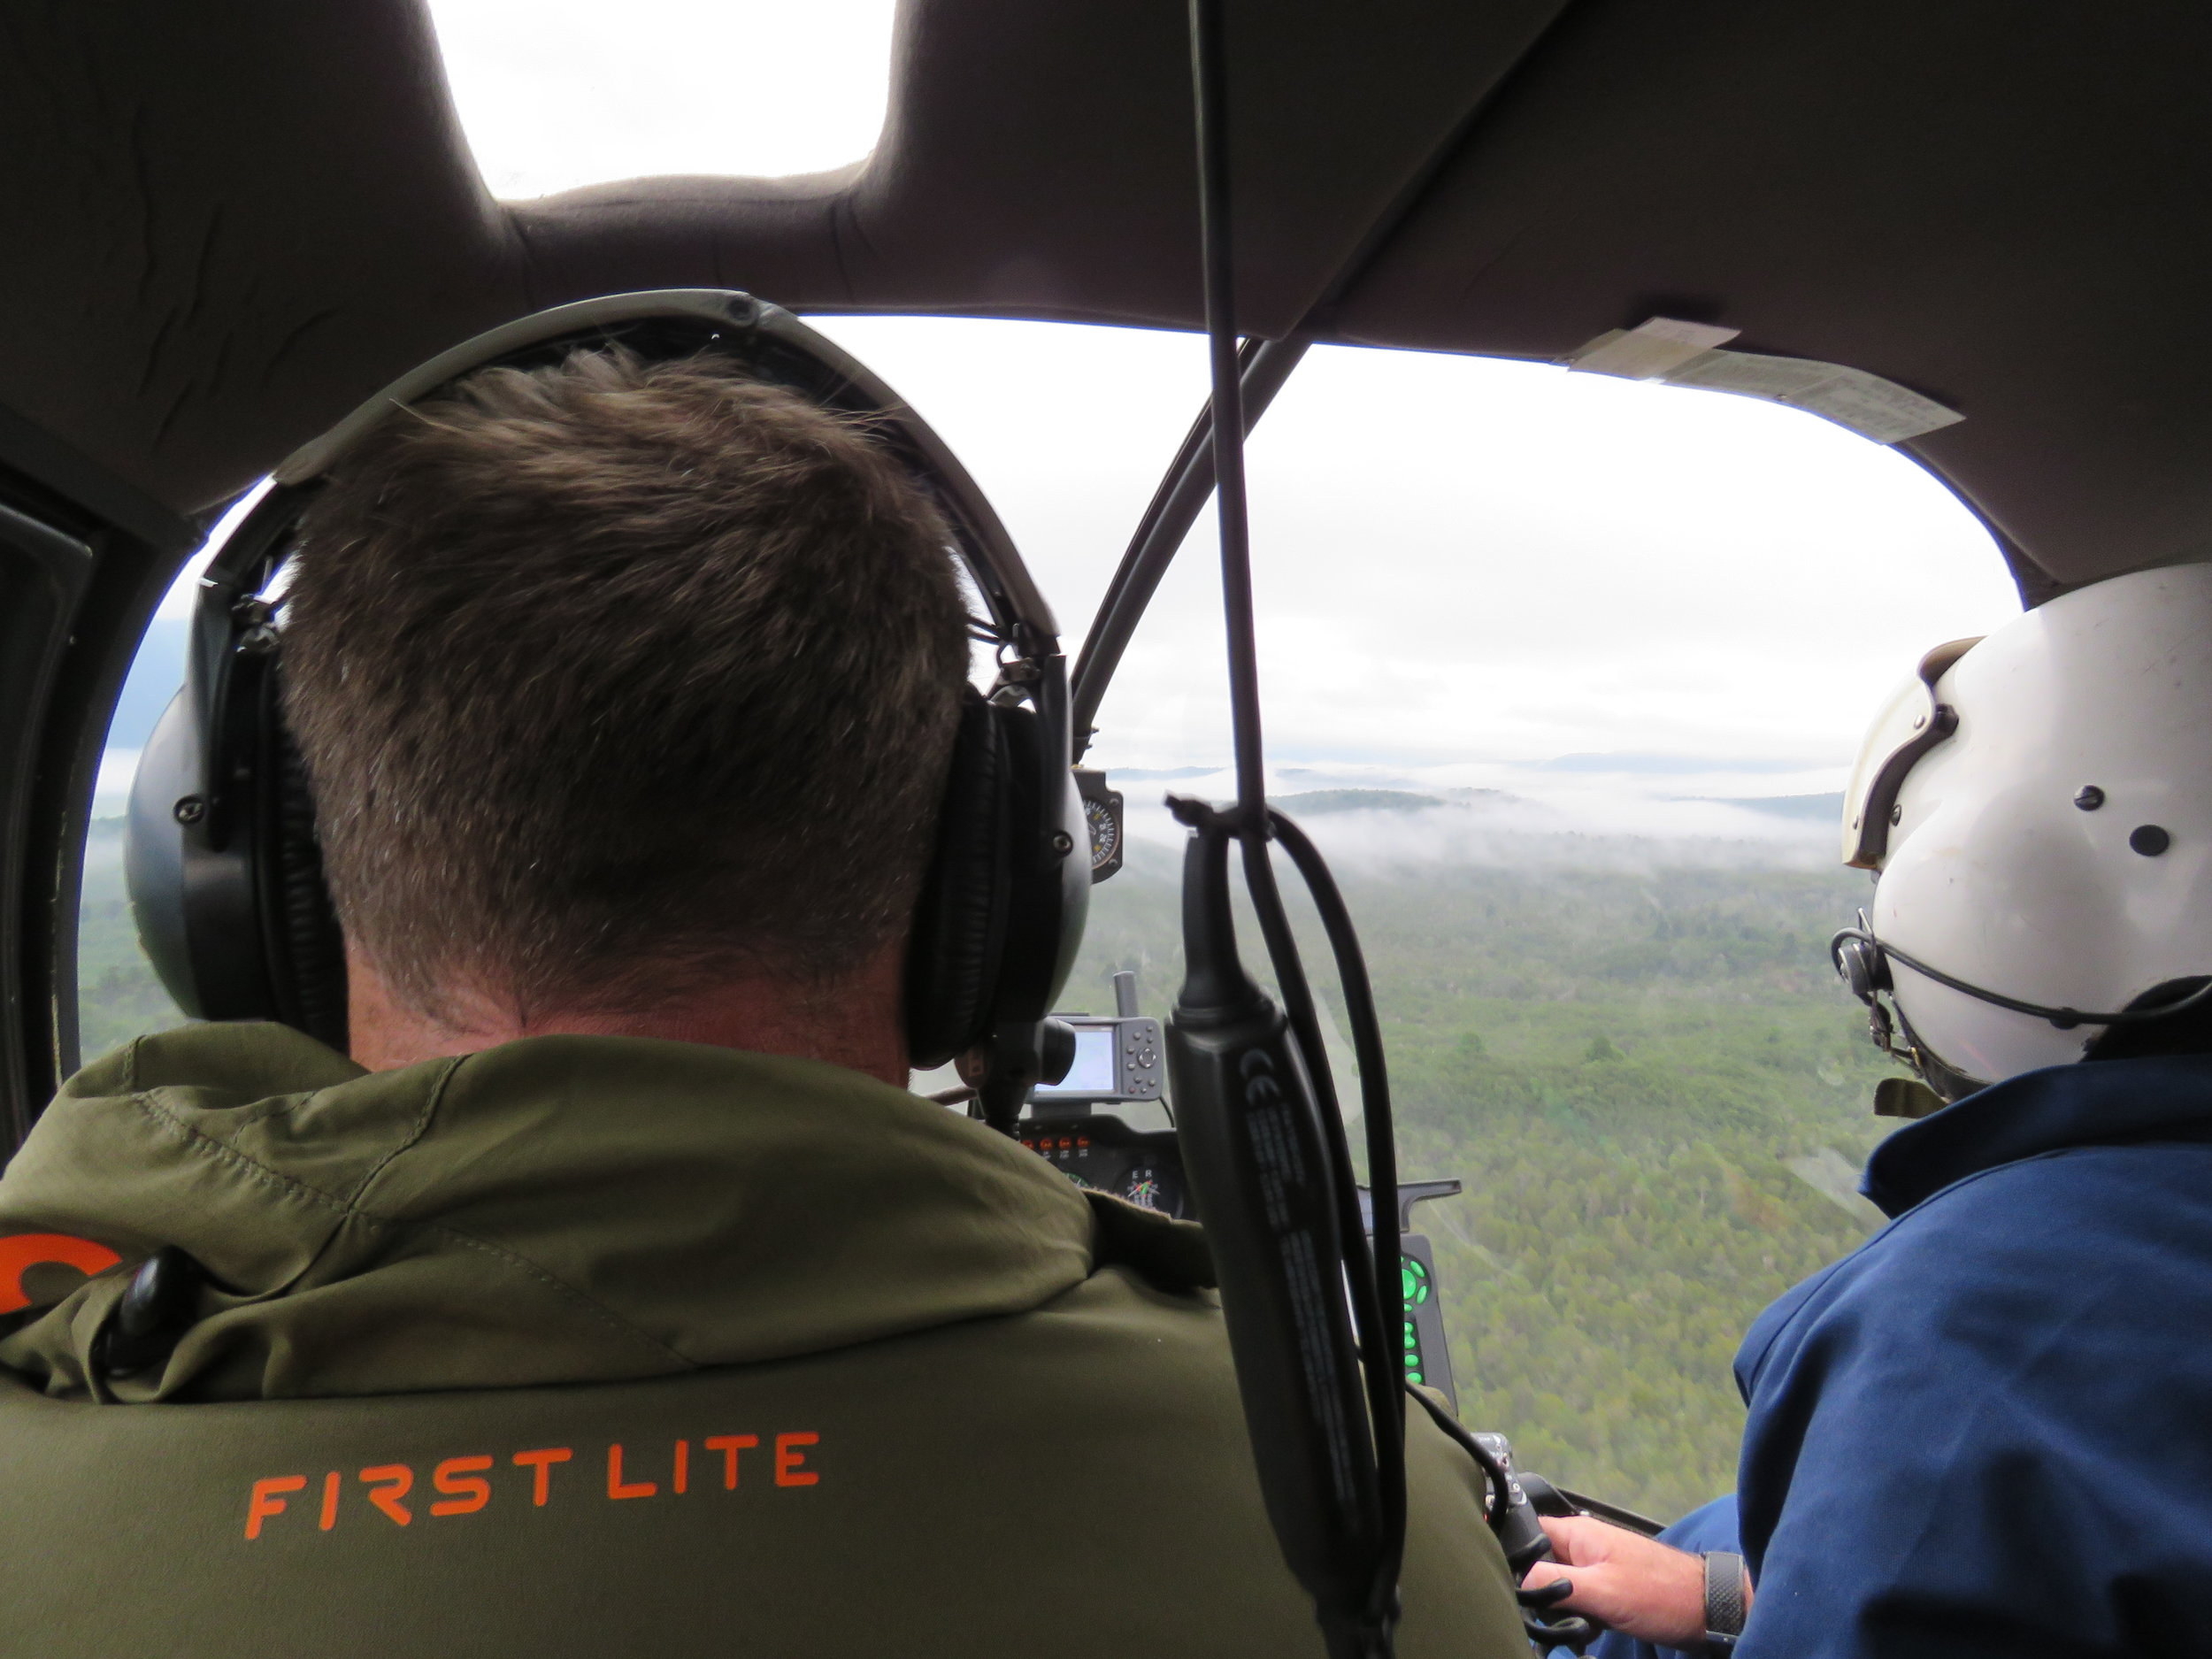 Flying in with  Ahaura Helicopters  first lite